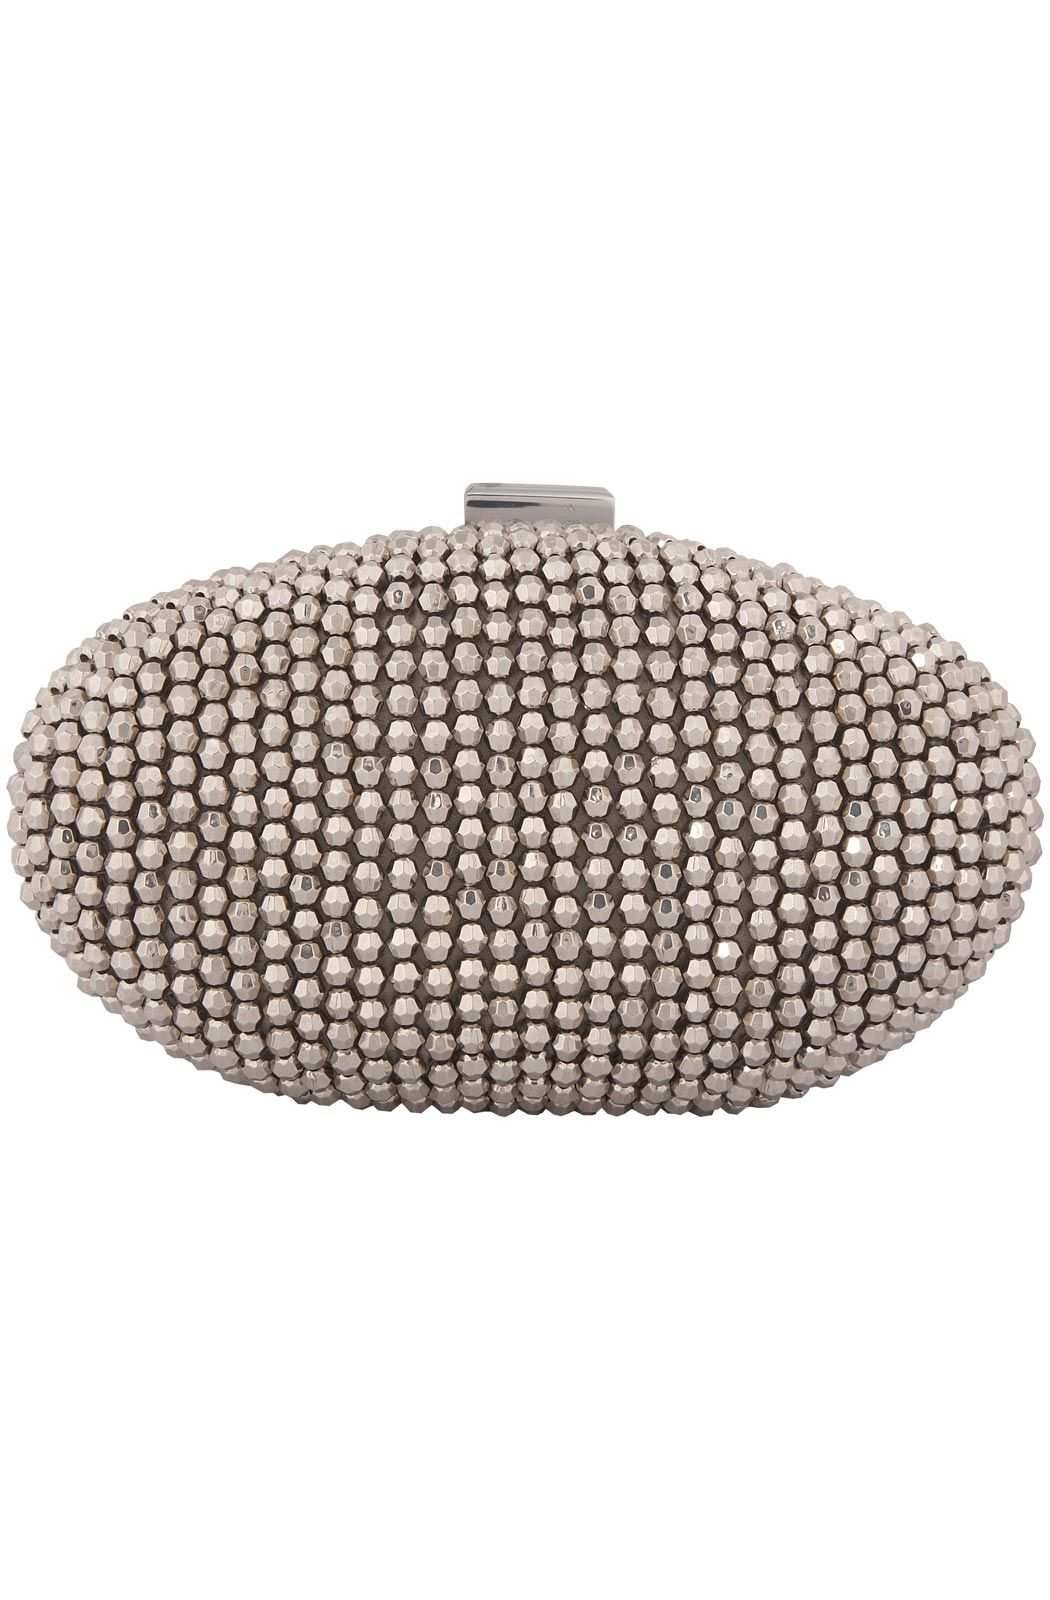 Coast Flavia beaded handbag Silver product image